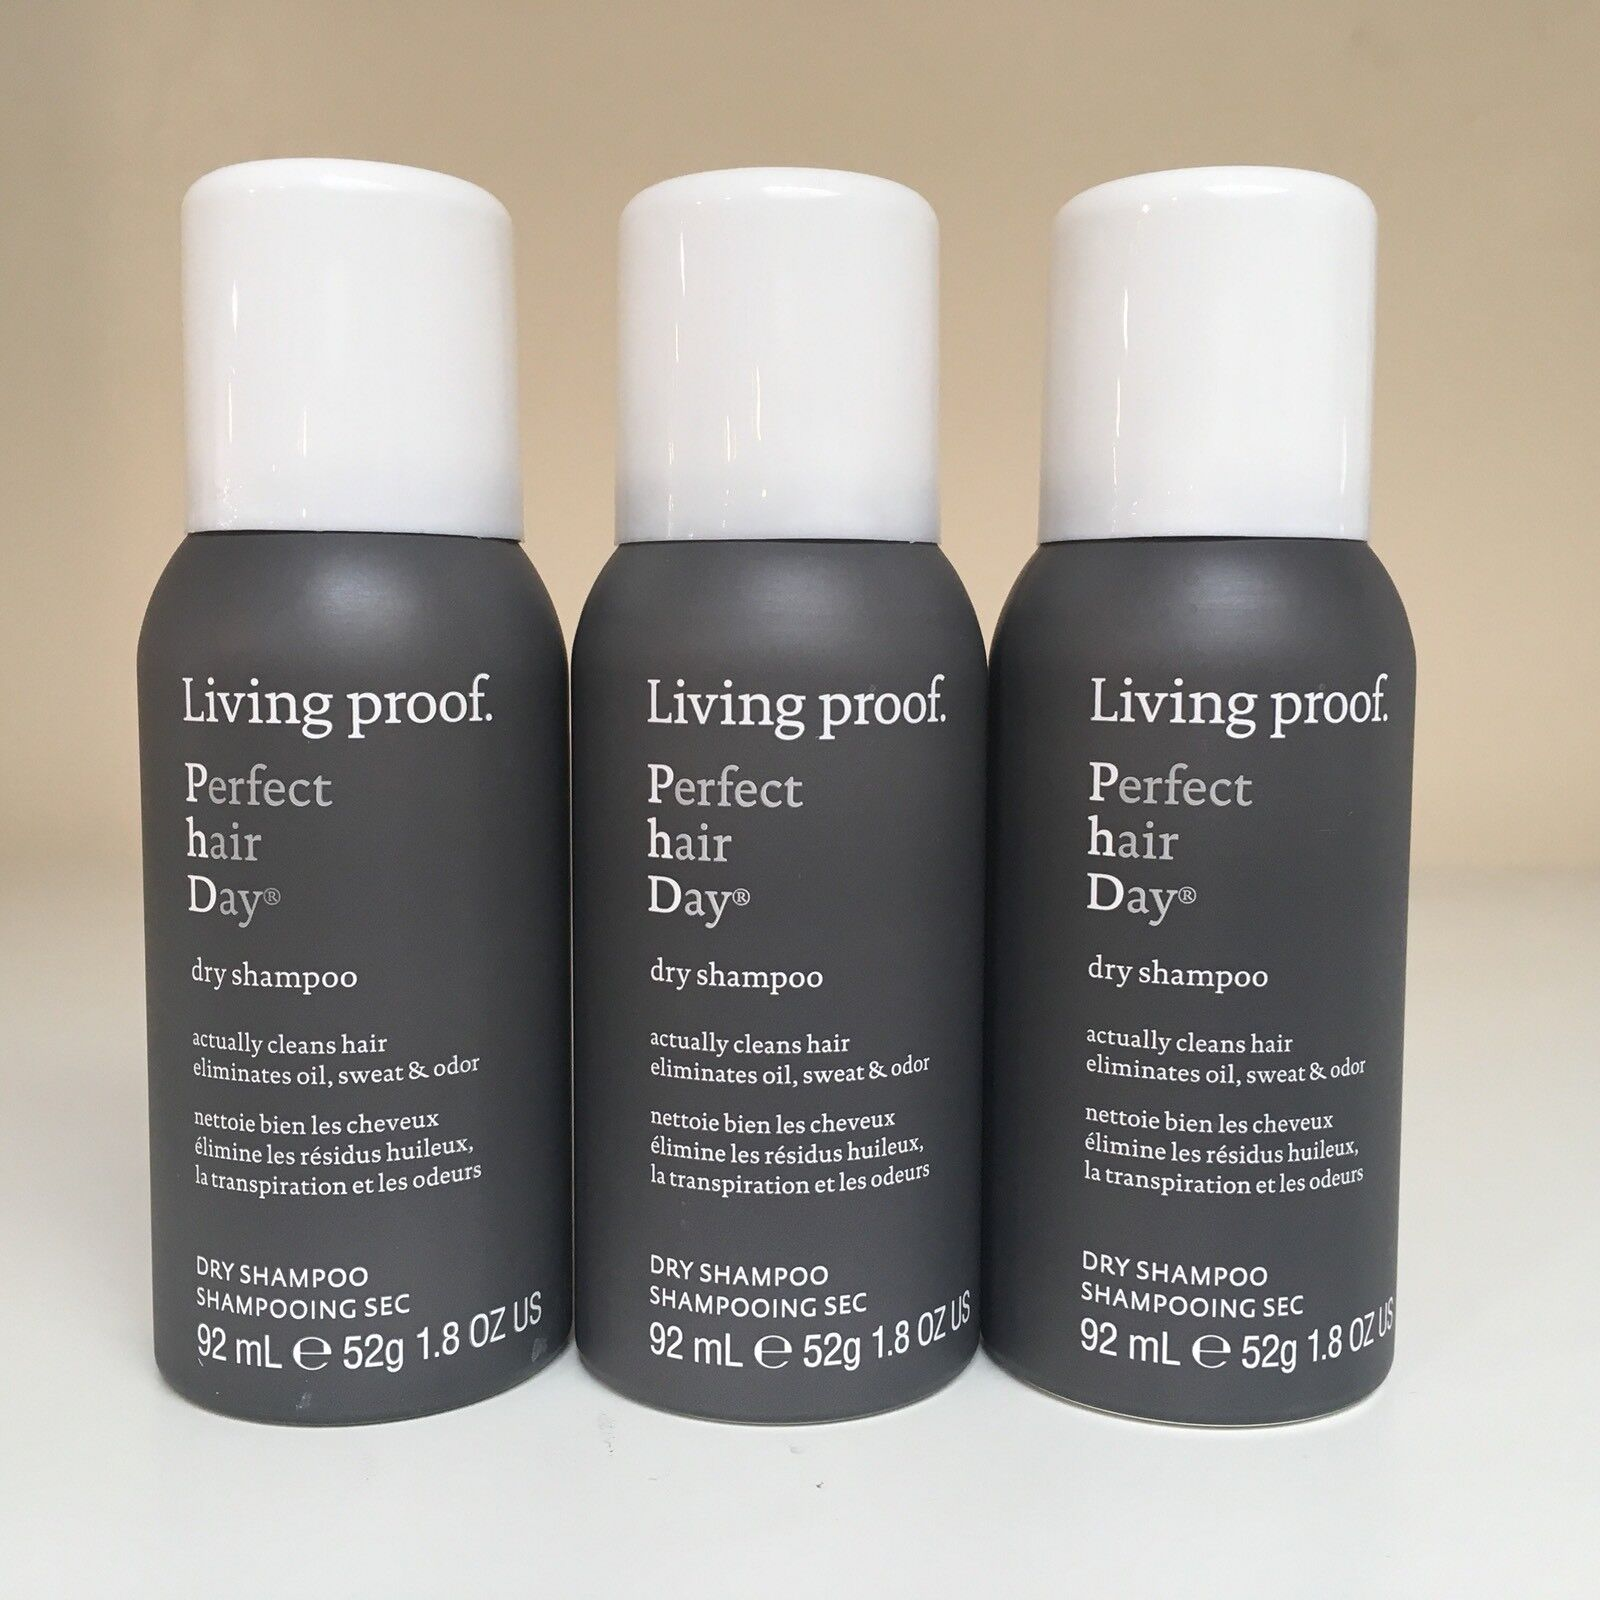 Living Proof Dry Shampoo 1.8 Ounce - Pack Of 1, 2, Or 3 - YO